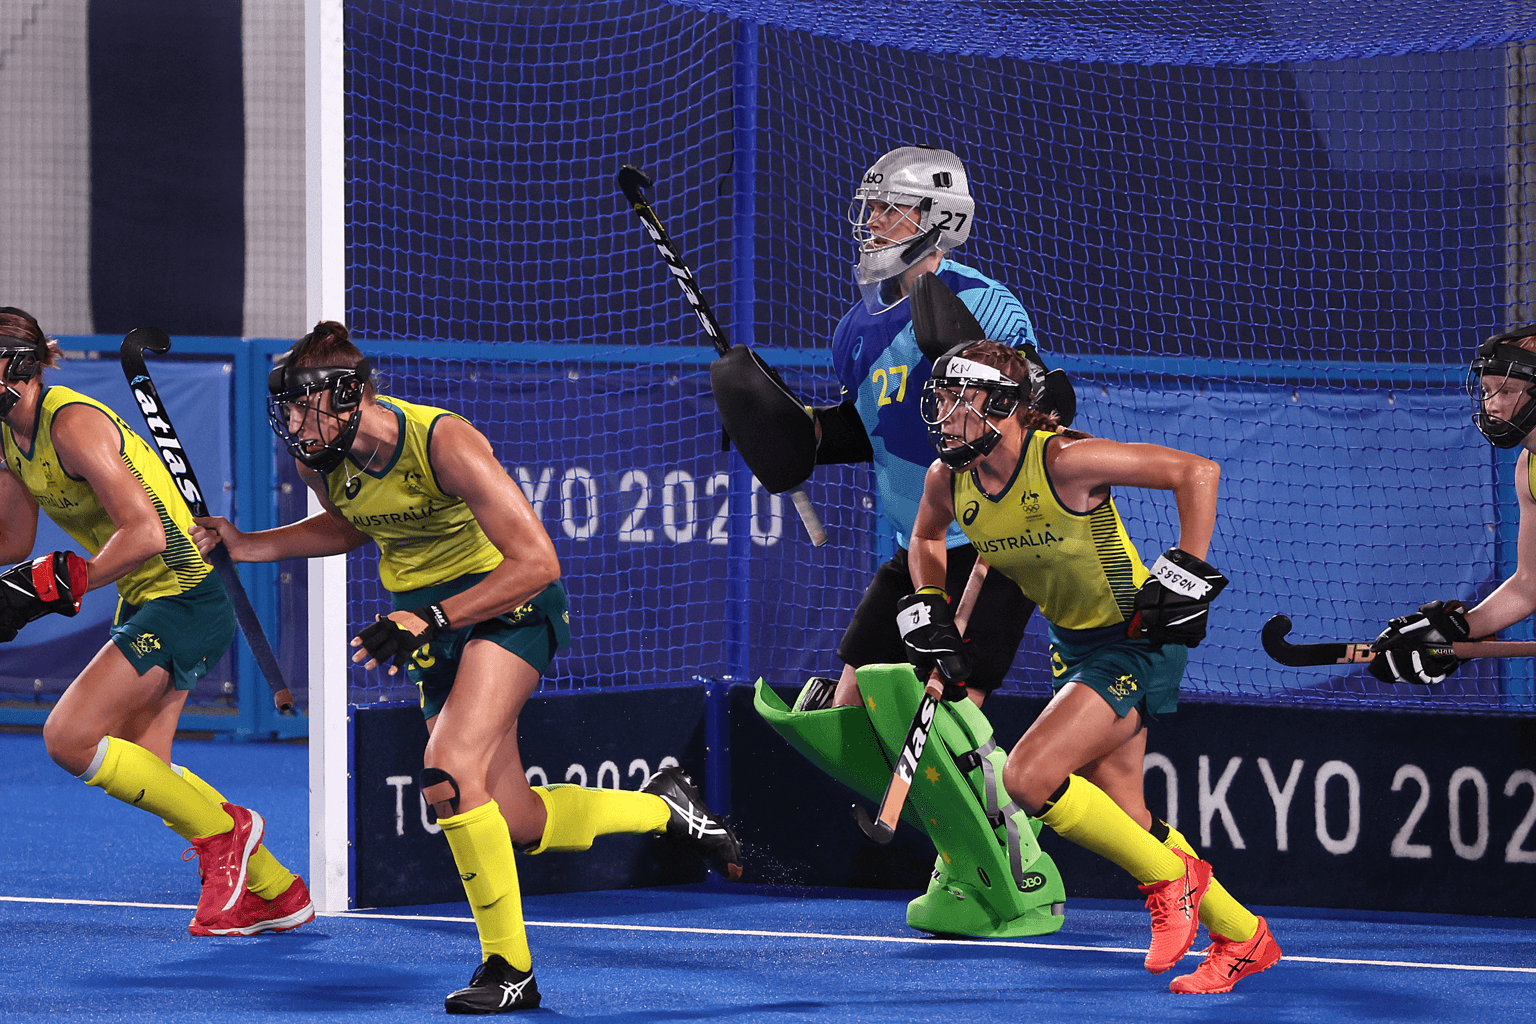 Members of the Hockeyroos Australian women's hockey team run out of goal, with keeper Rachael Lynch in blue protective clothing. Photo: Getty Images